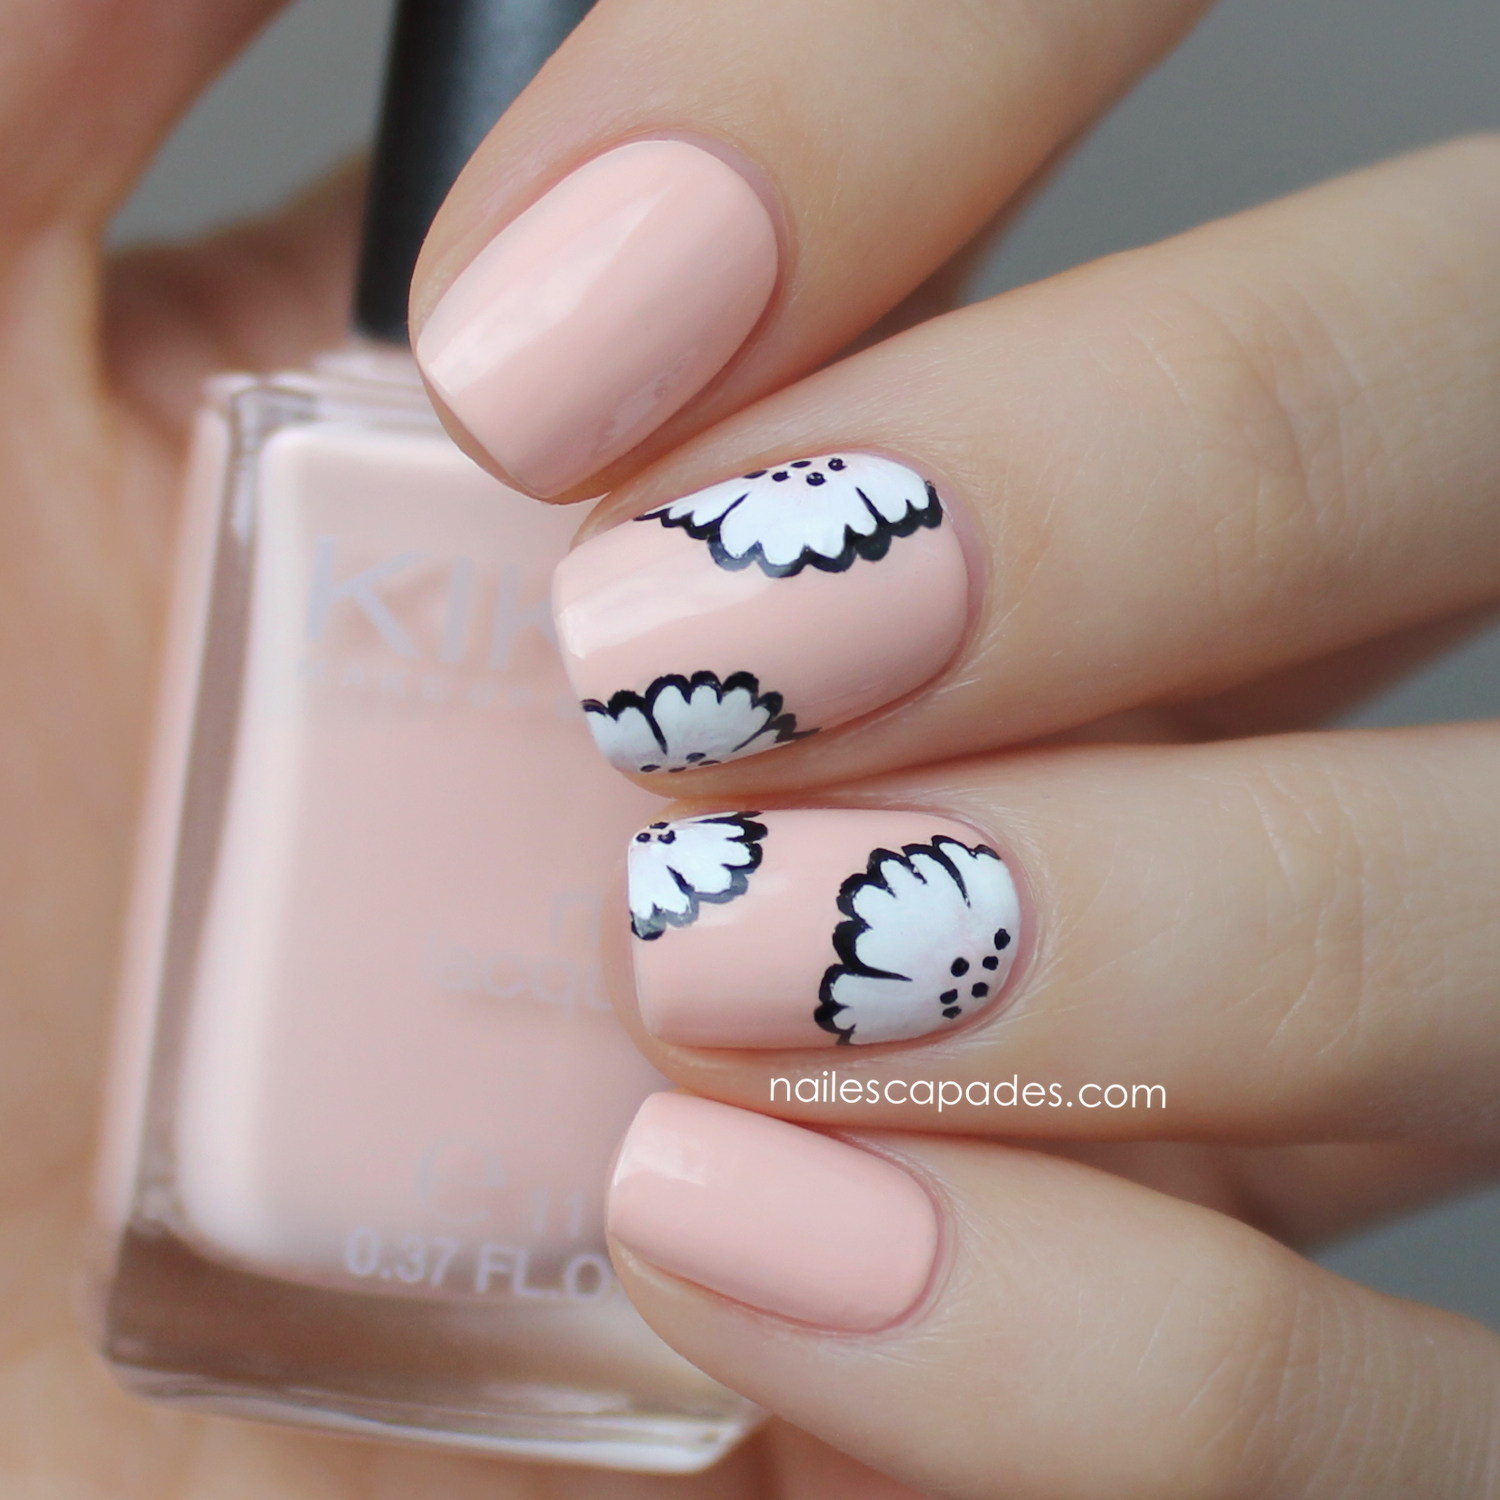 Nail art ideas for short nails manicures designs for shorter nails prinsesfo Choice Image